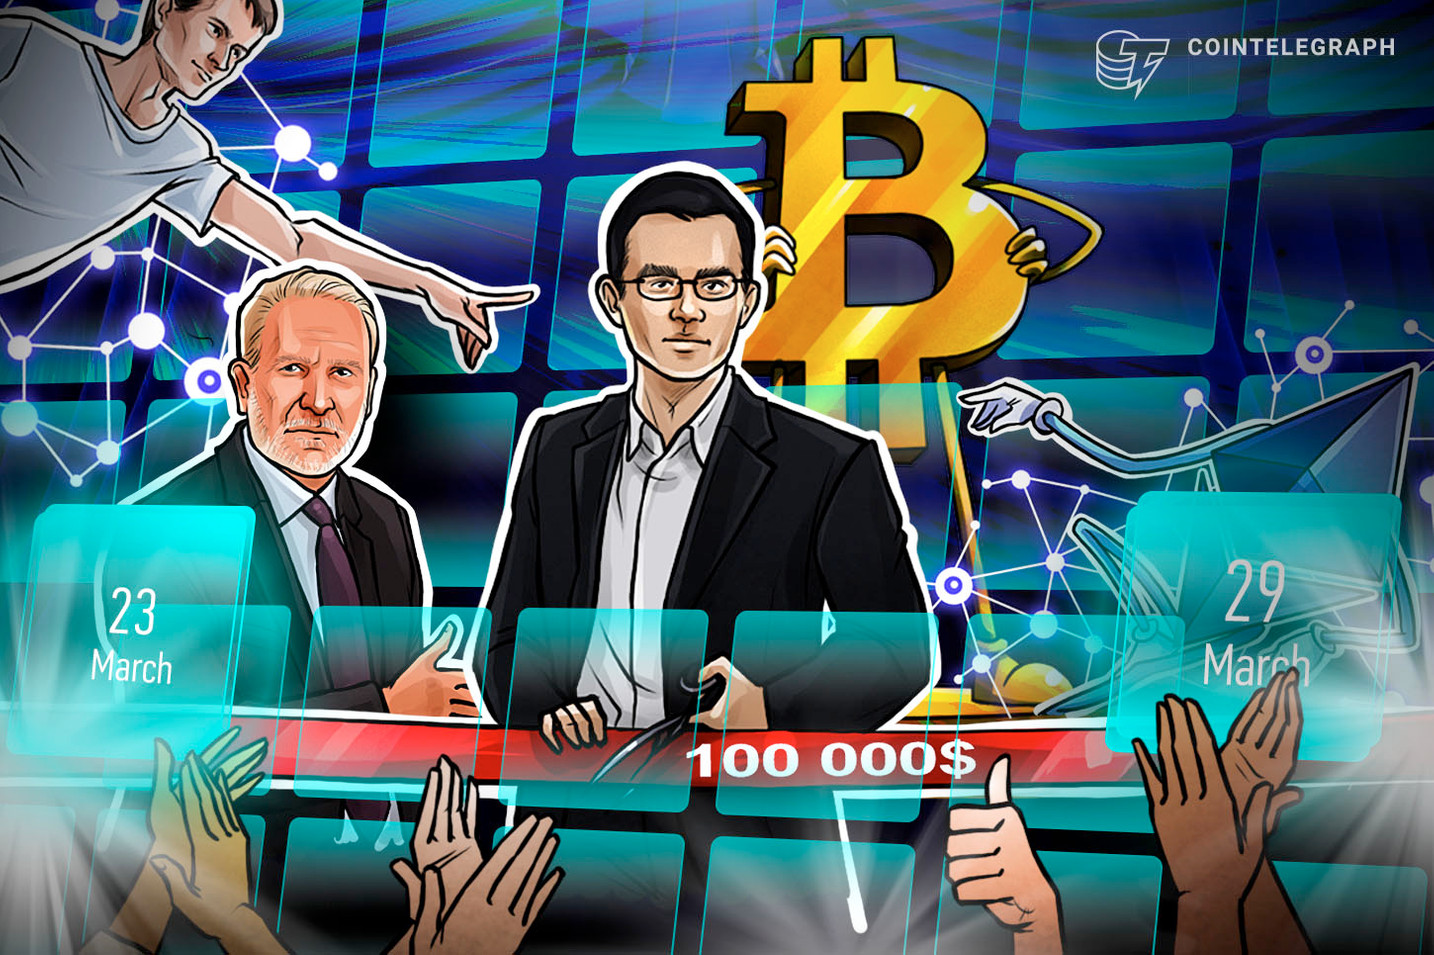 BTC Worries, Buterin 'Embarrassed,' Blockchain Fights Coronavirus: Hodler's Digest, March 23-29